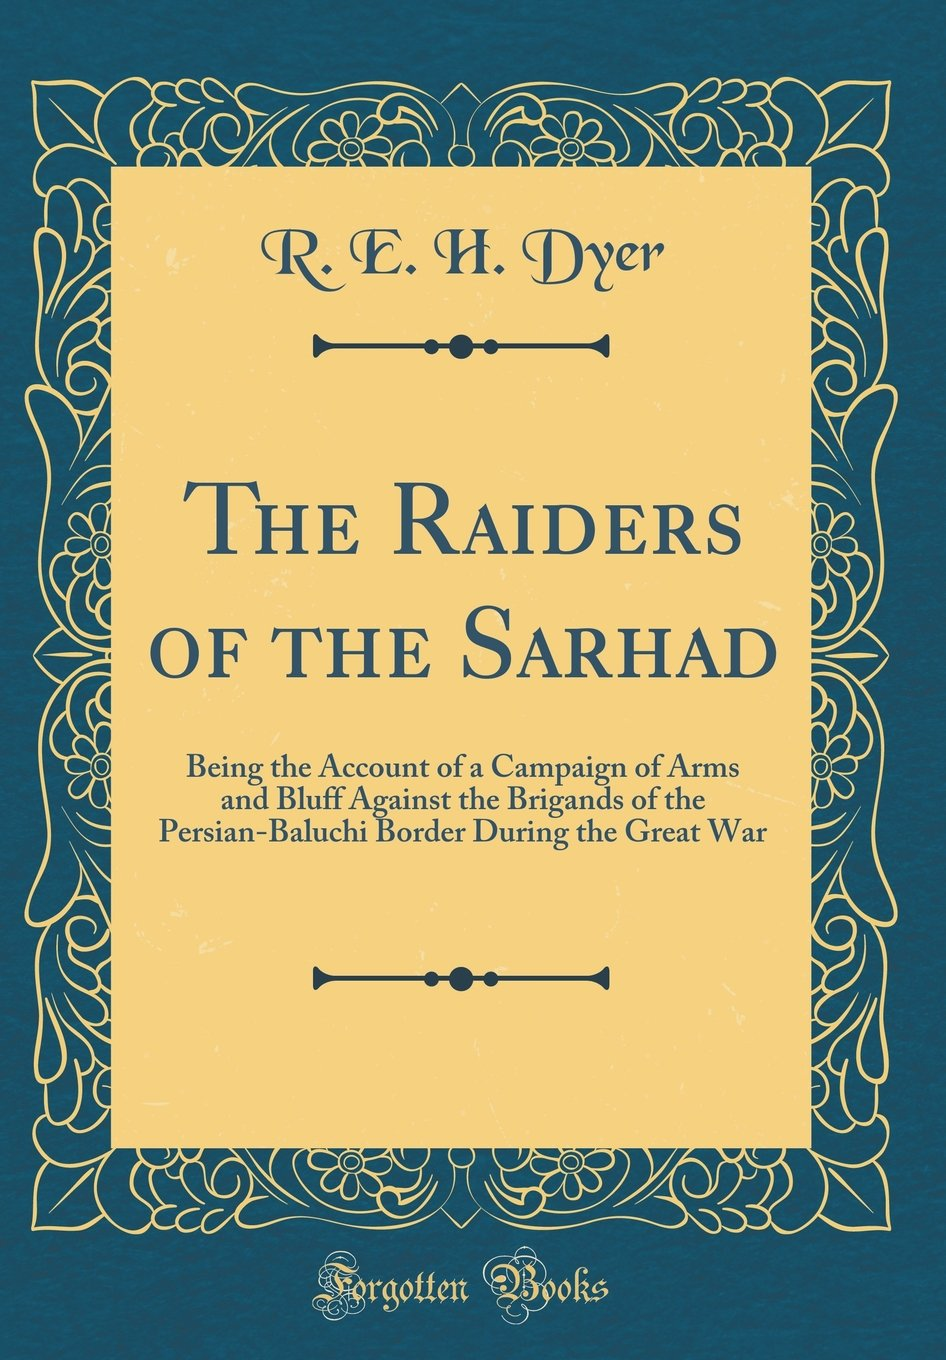 Download The Raiders of the Sarhad: Being the Account of a Campaign of Arms and Bluff Against the Brigands of the Persian-Baluchi Border During the Great War (Classic Reprint) PDF